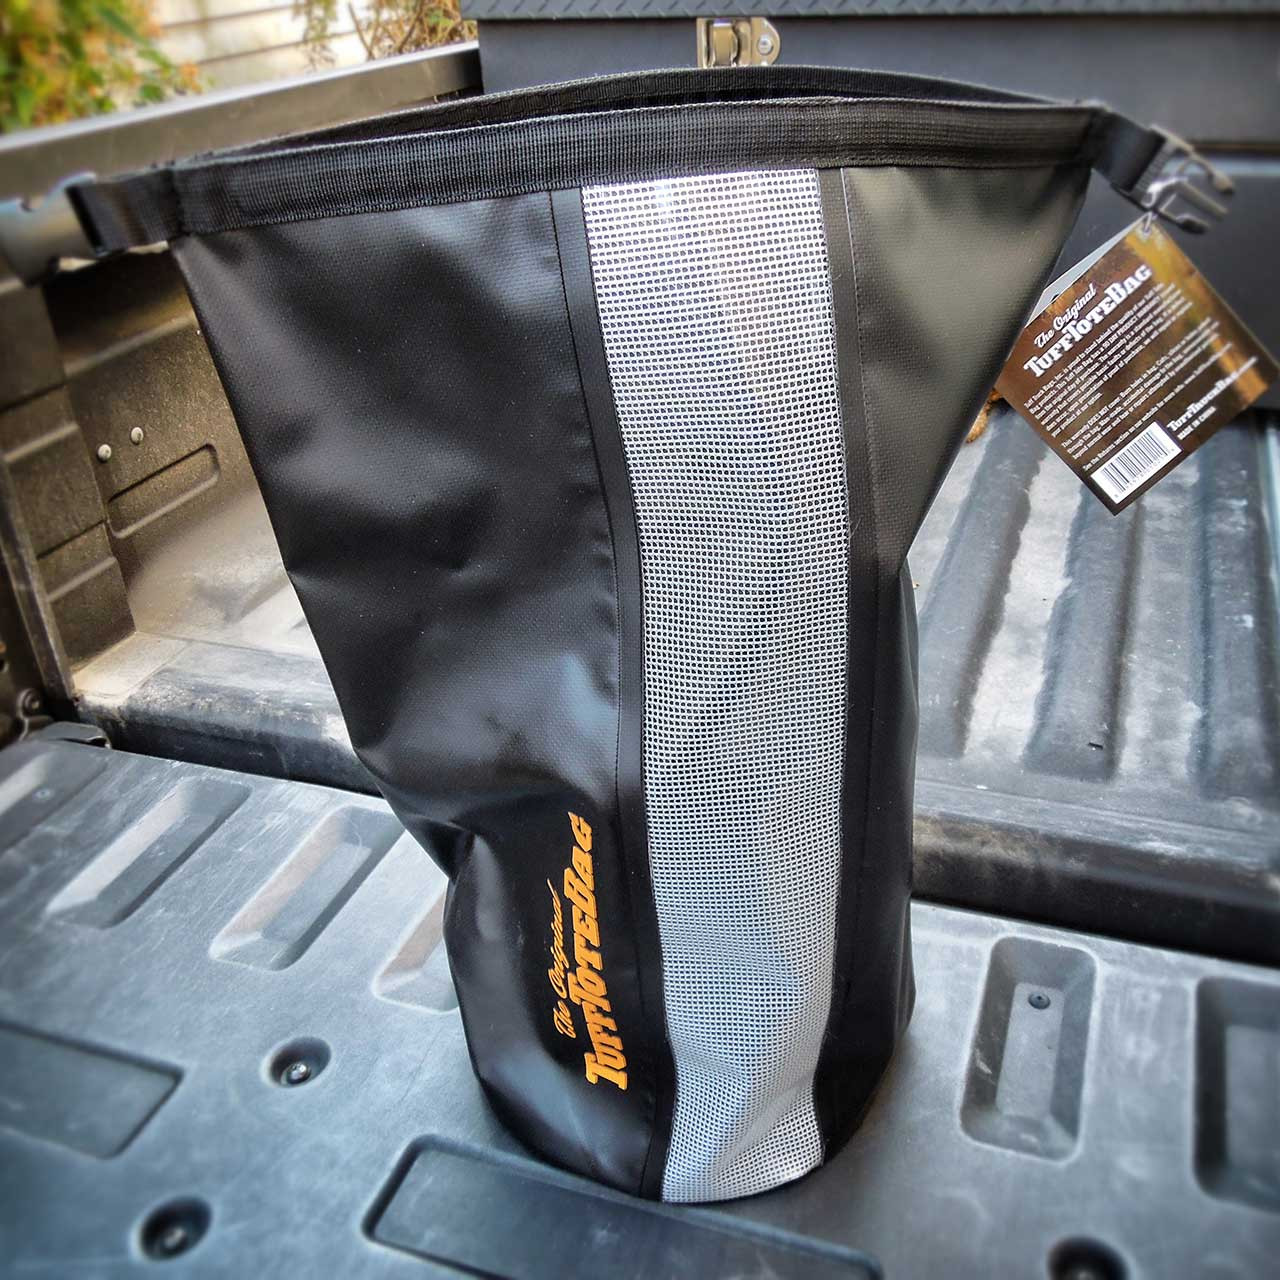 Front view of the rolled open top of the black waterproof Tuff Tote bag.